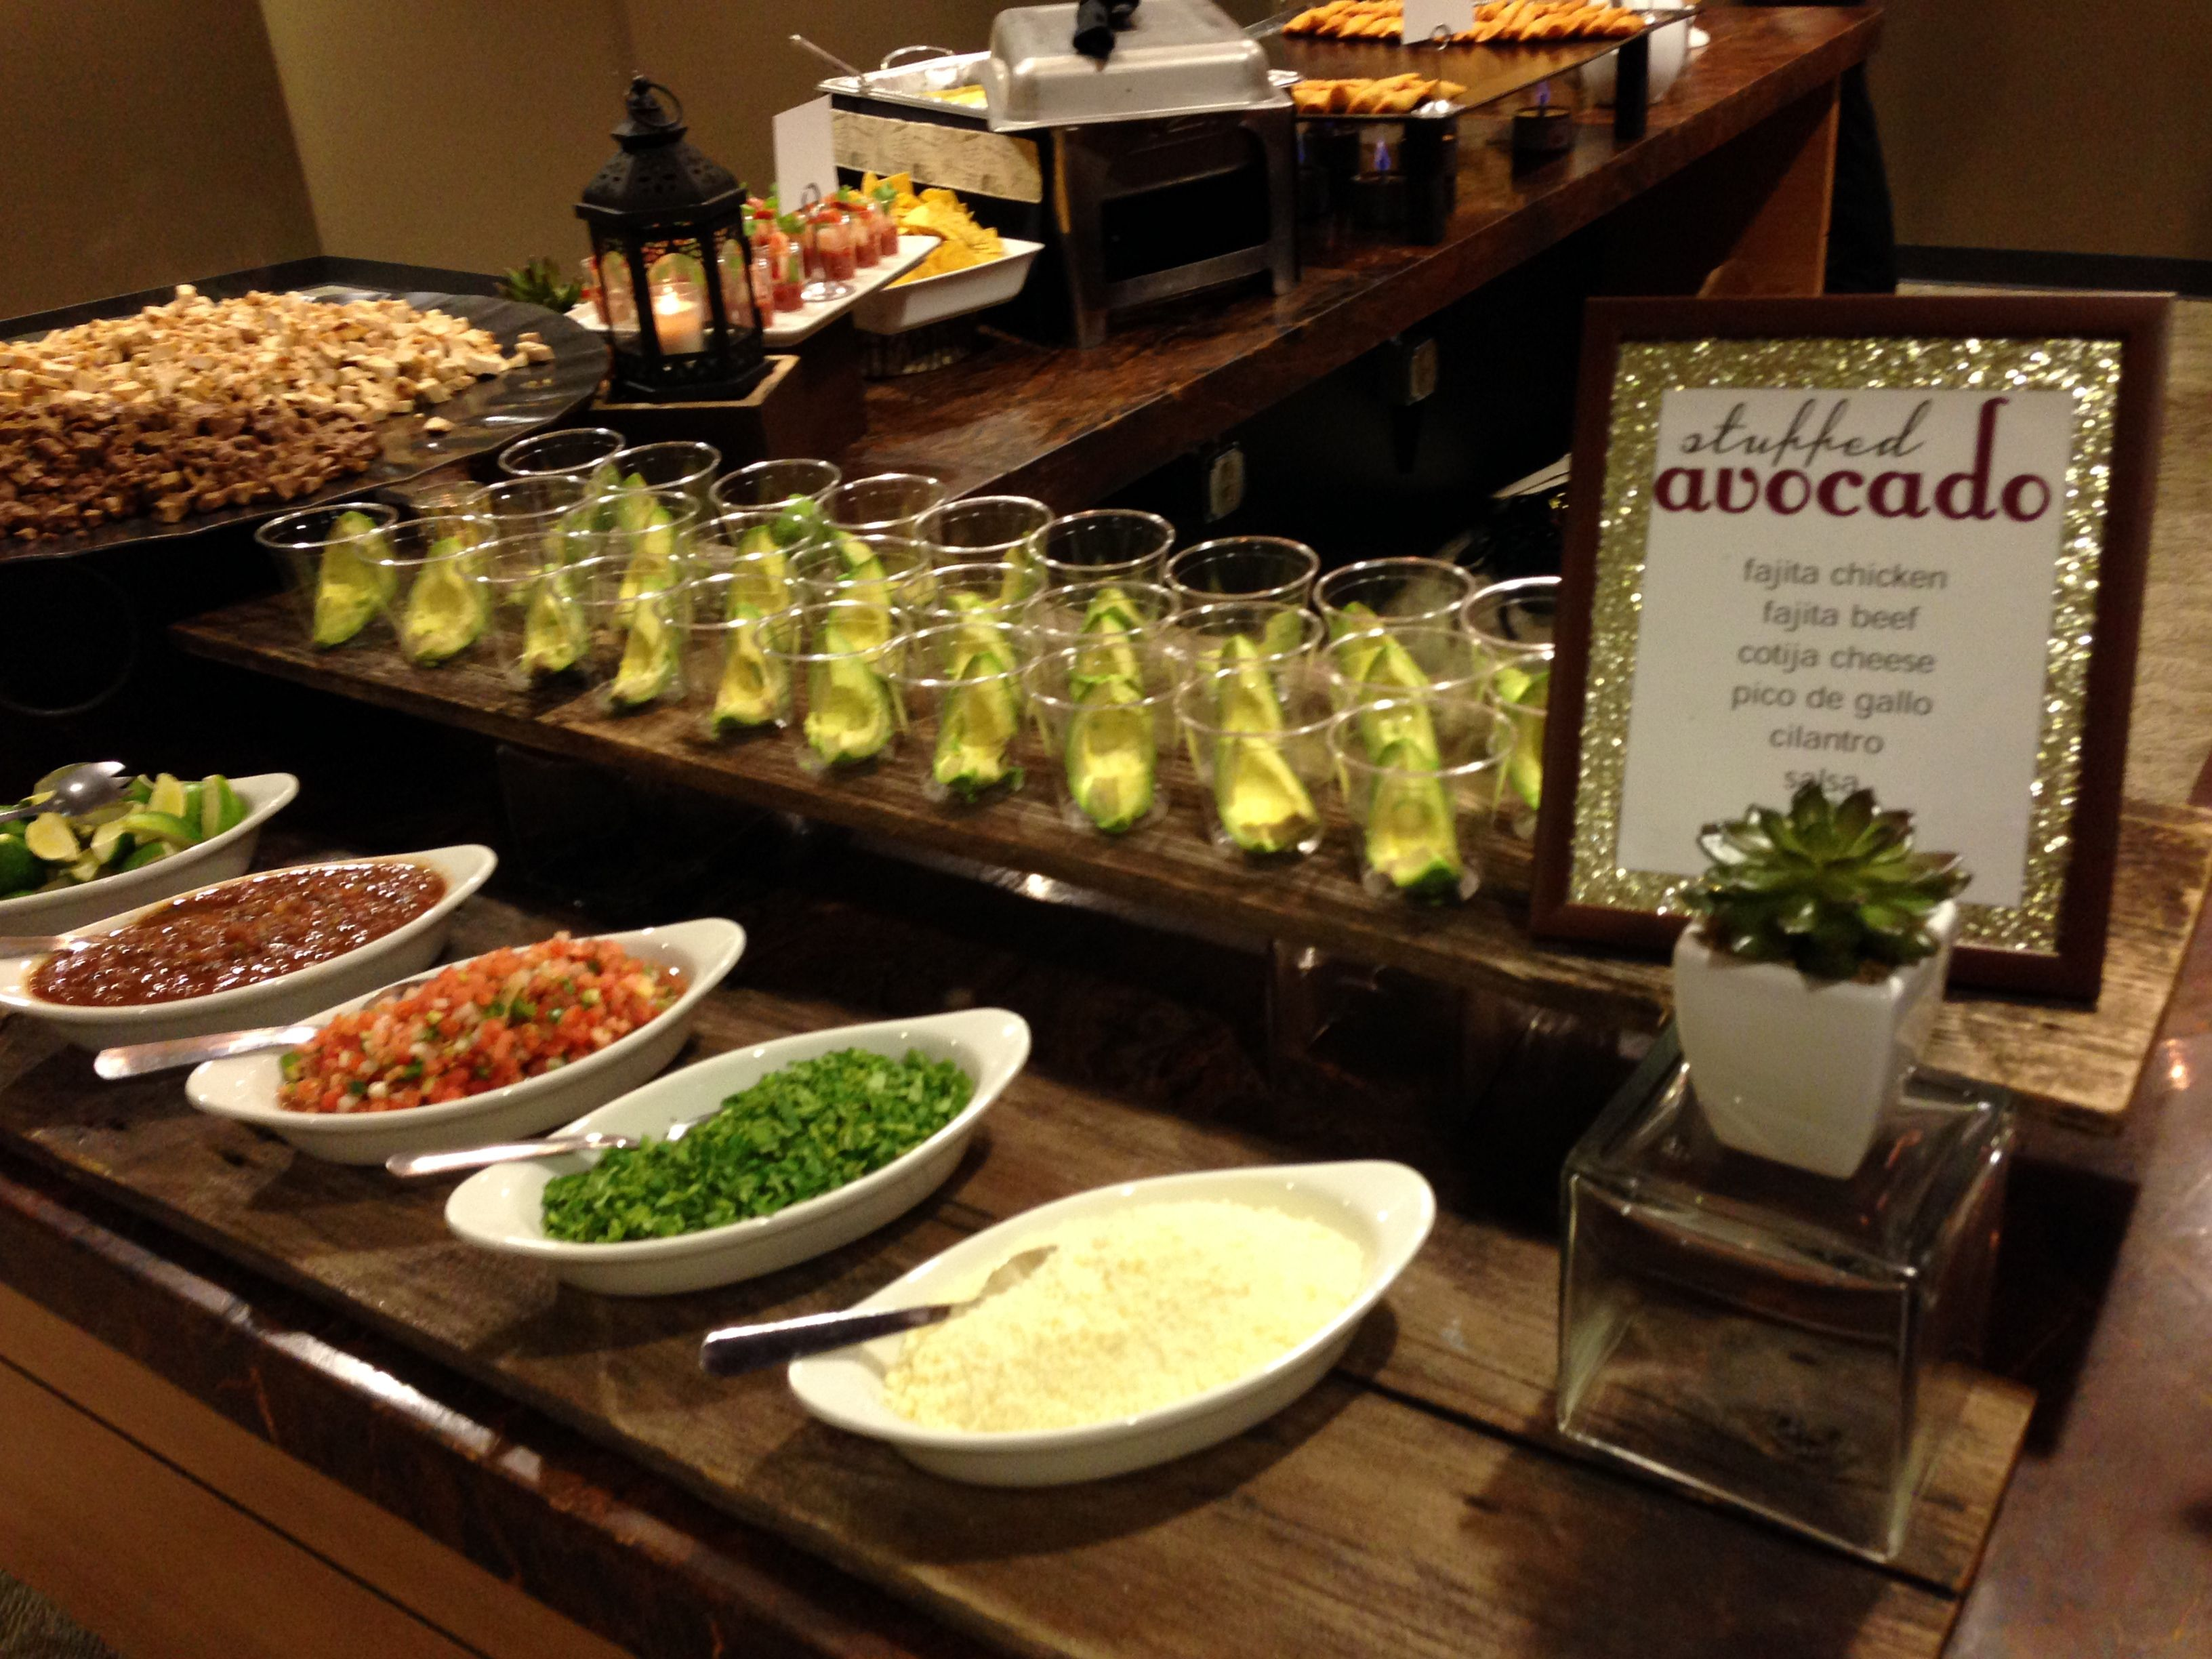 Build Your Own Stuffed Avocado Bar Catering Avocadobar